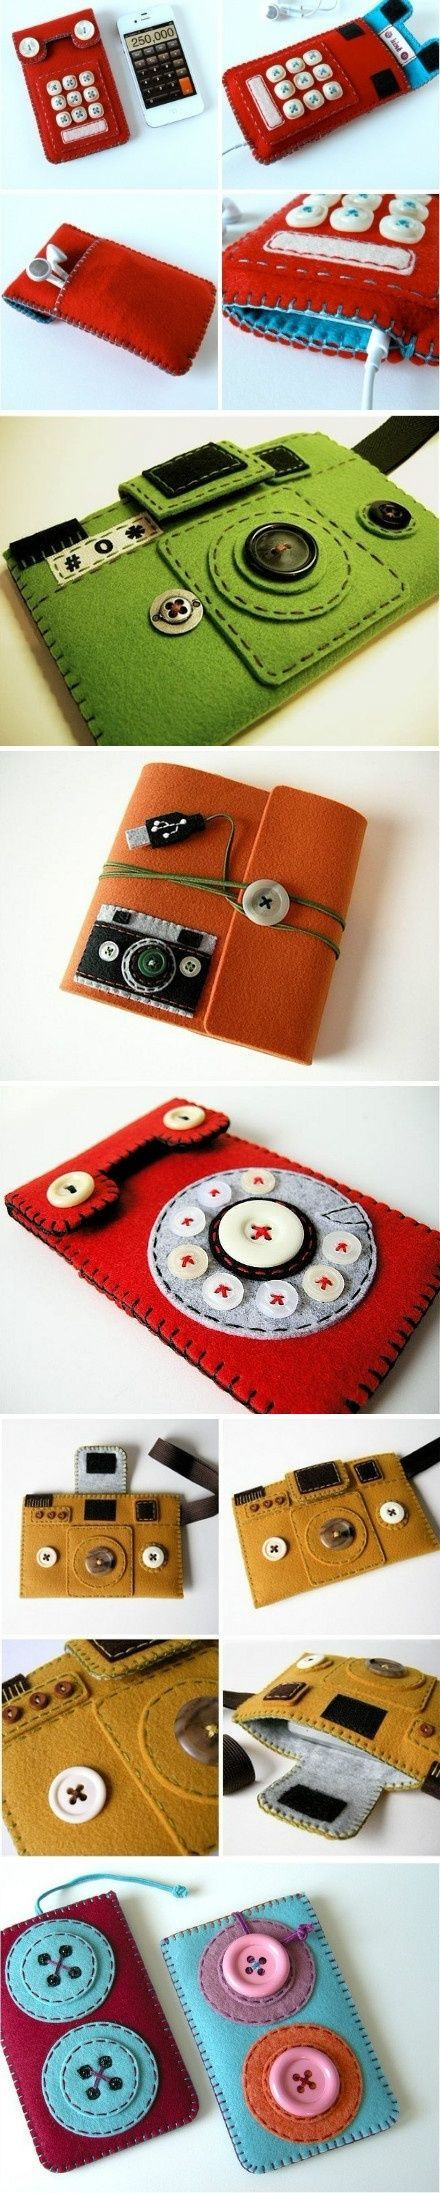 Non-woven fabric made various mobile phone protective cover, very creative!